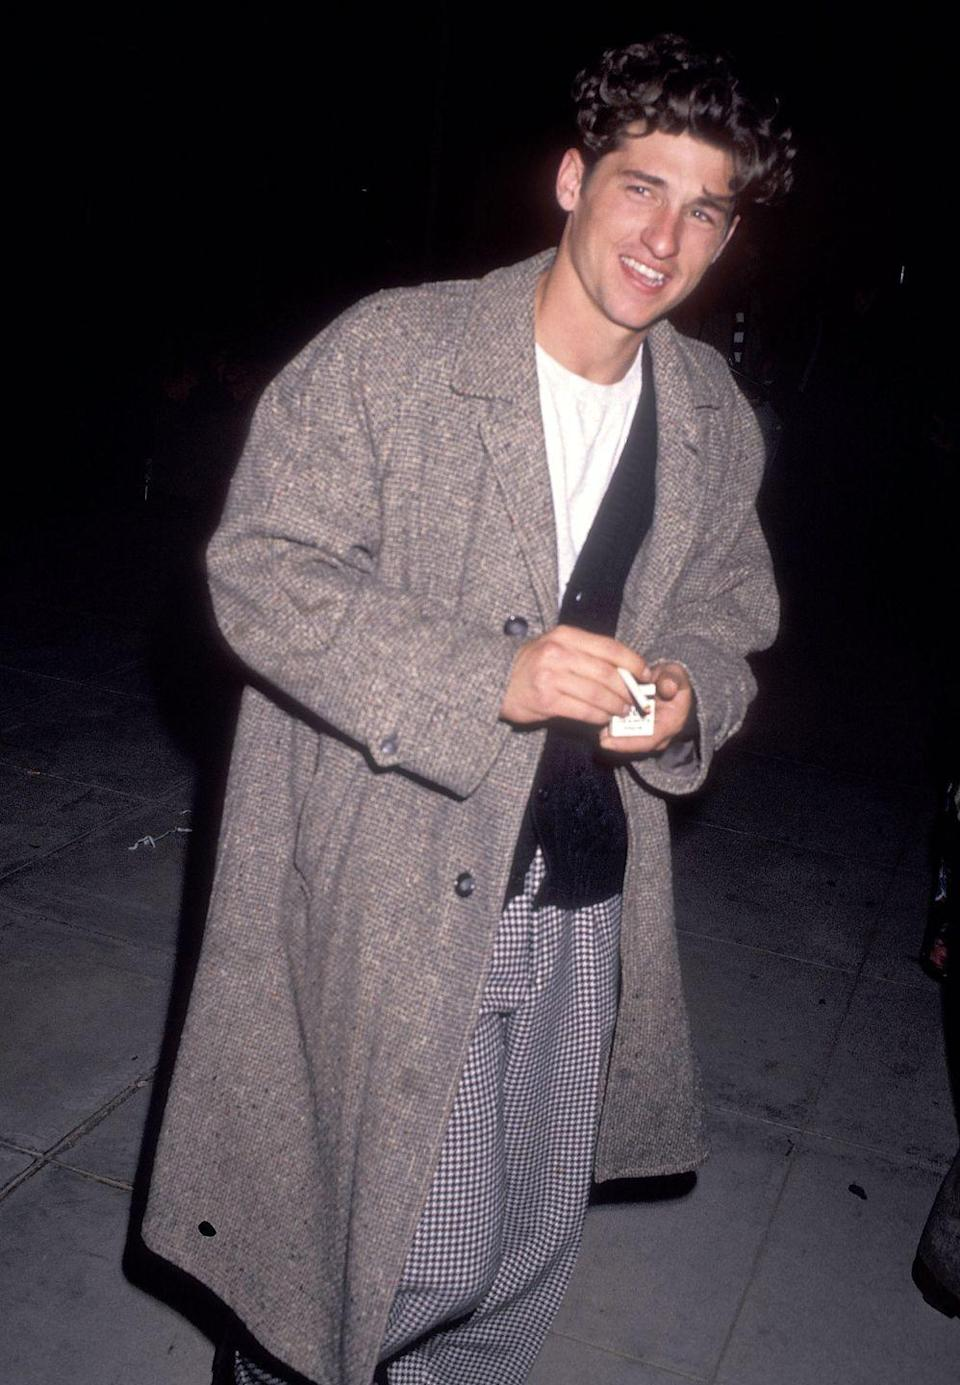 <p>Somehow this T-shirt, cardigan, and long jacket feels extremely Chandler Bing but in a good way? Men in layers are good, whether you're Dempsey, Bing, or neither of the above.</p>